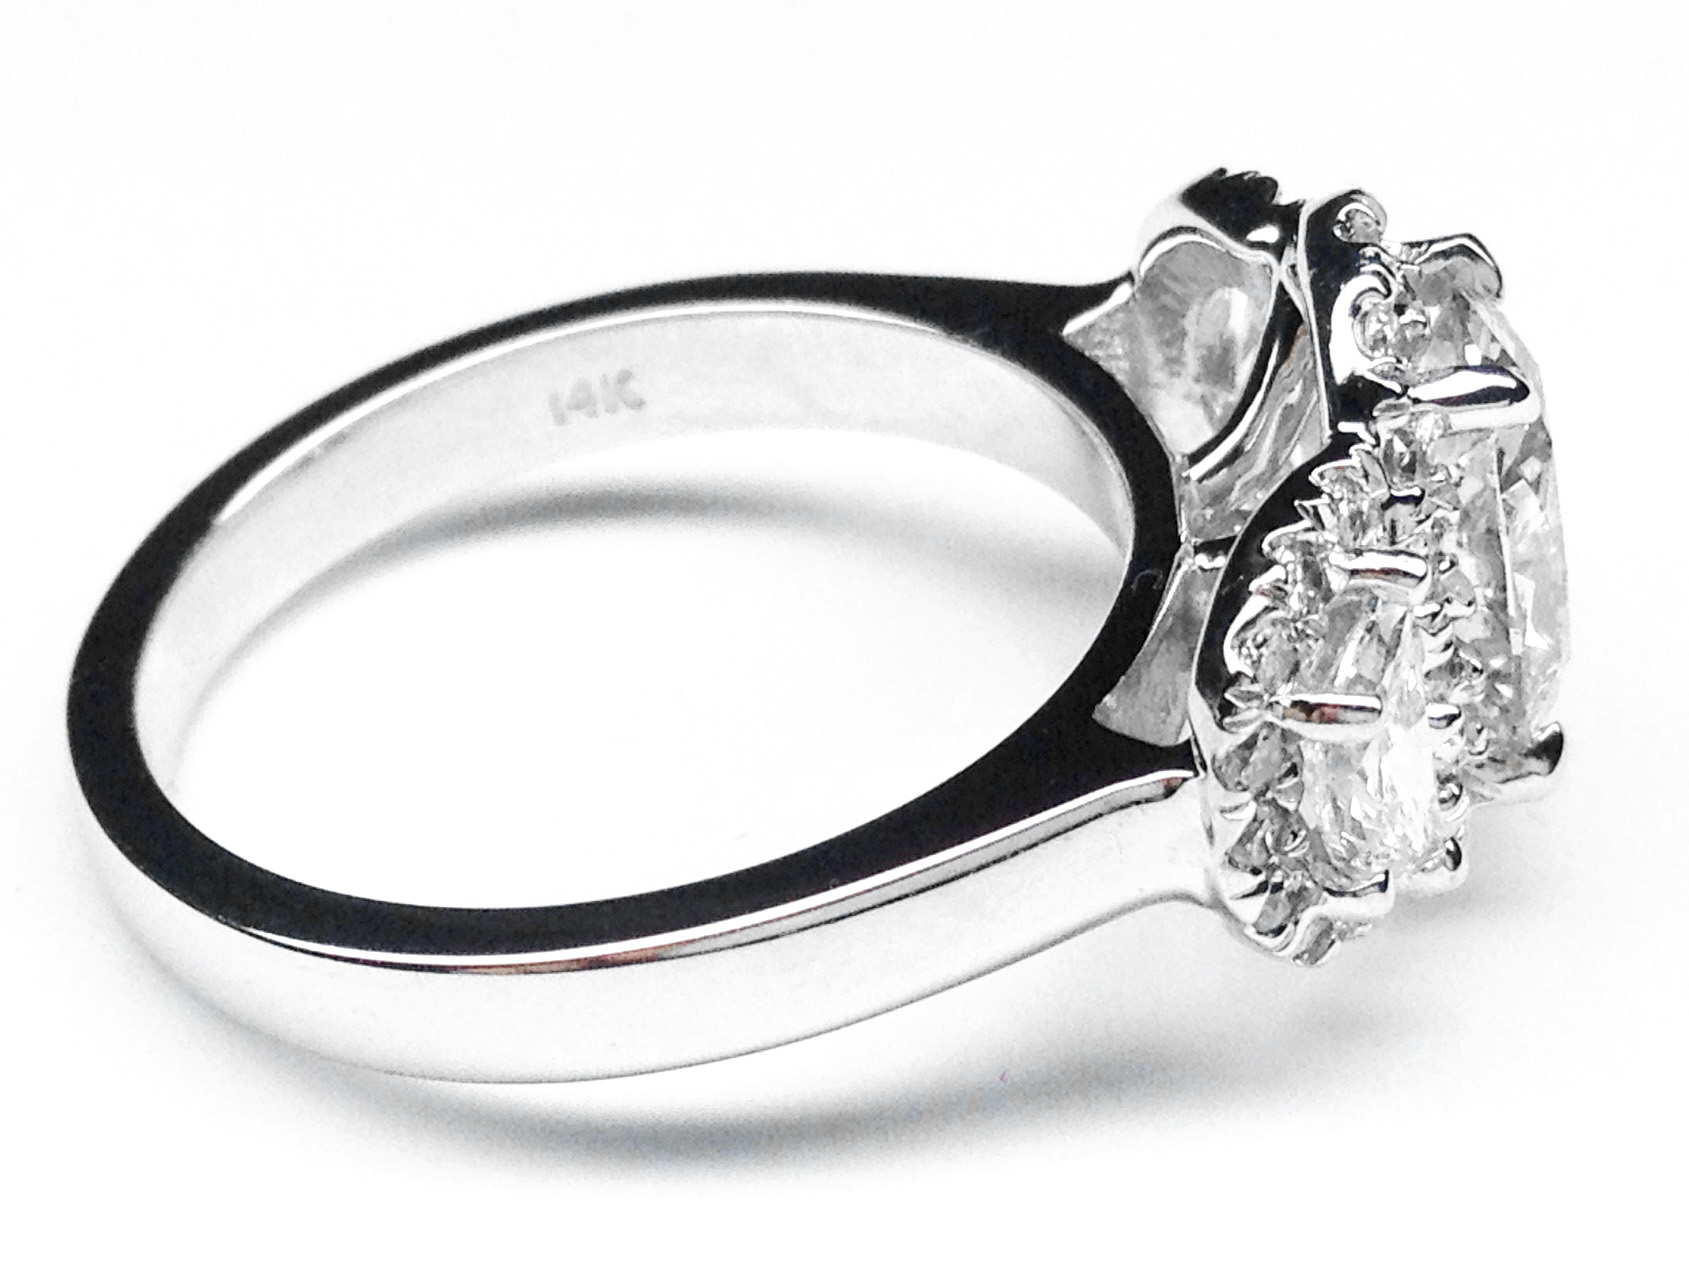 Oval Diamond Halo Engagement Ring Half Moon Side Stones in 14K White Gold